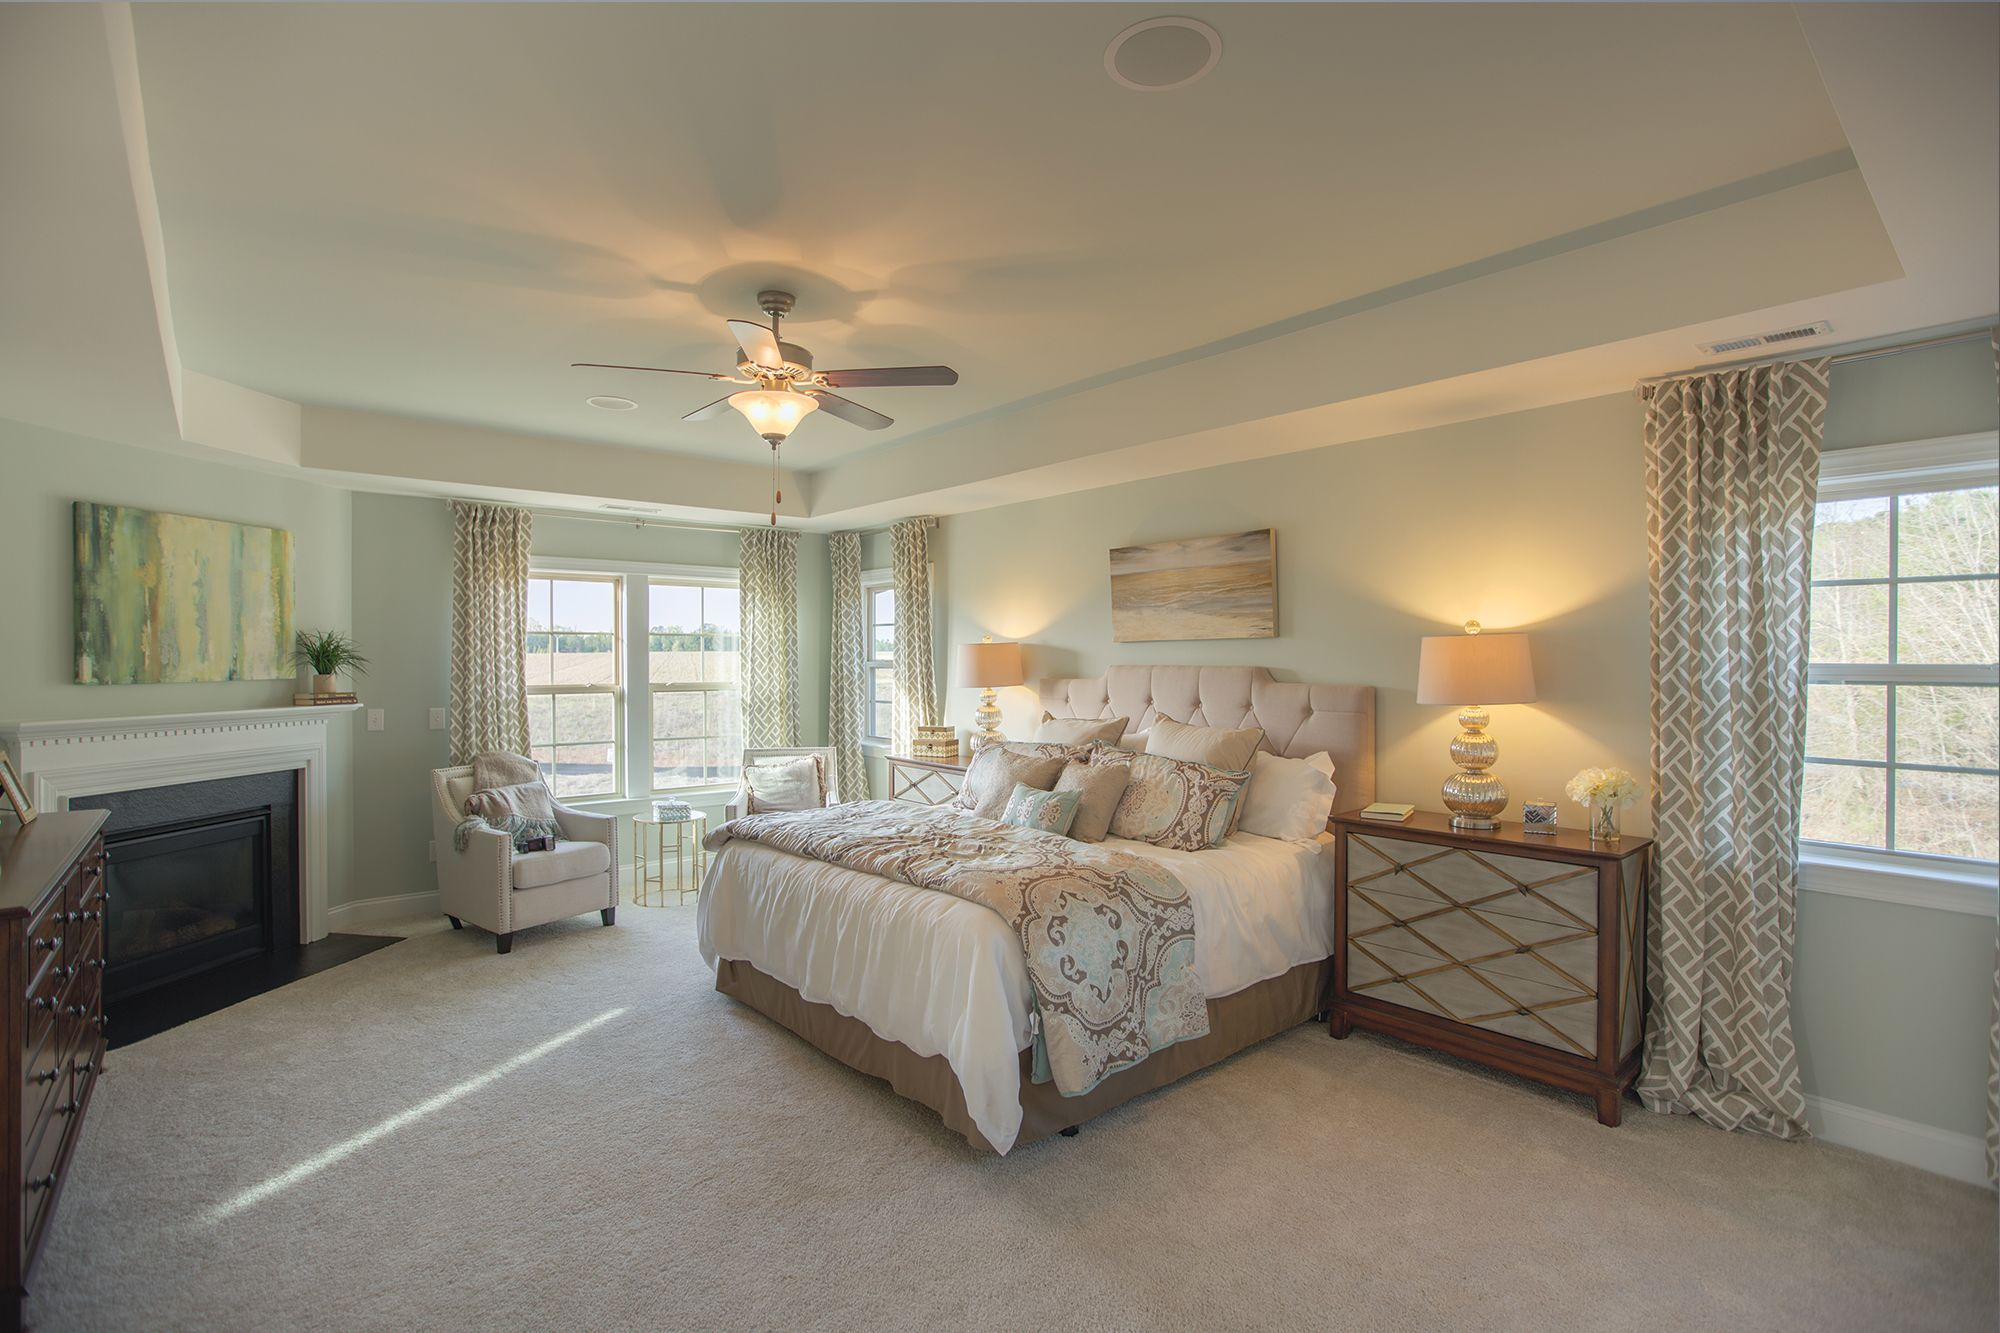 Warm lovely bedroom with lots of natural light, tufted